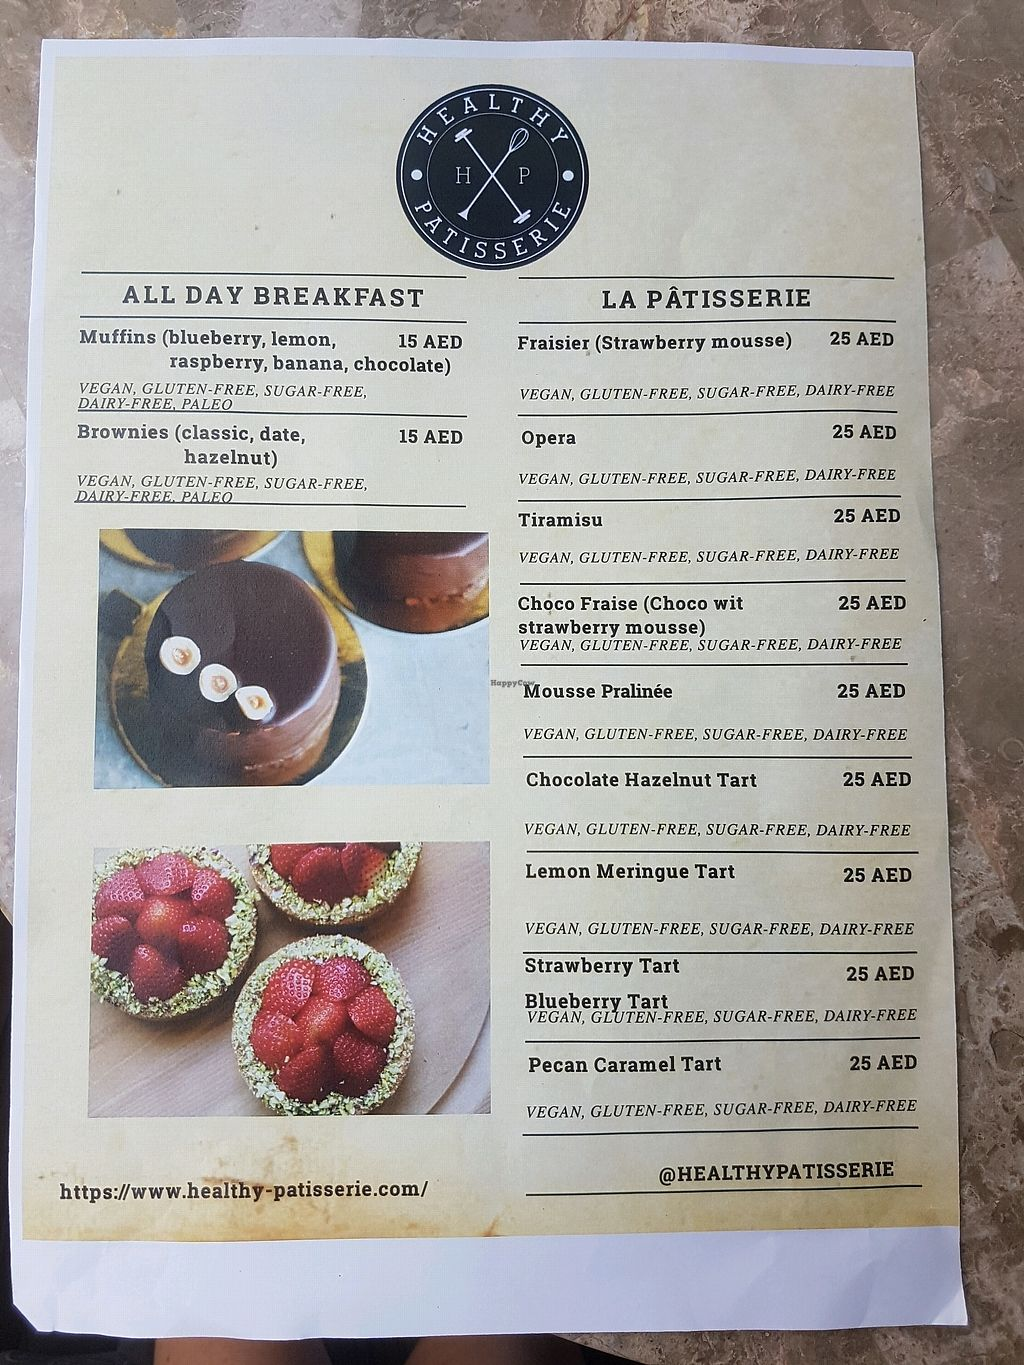 "Photo of Healthy Patisserie  by <a href=""/members/profile/Olena"">Olena</a> <br/>menu <br/> April 14, 2018  - <a href='/contact/abuse/image/103812/385558'>Report</a>"